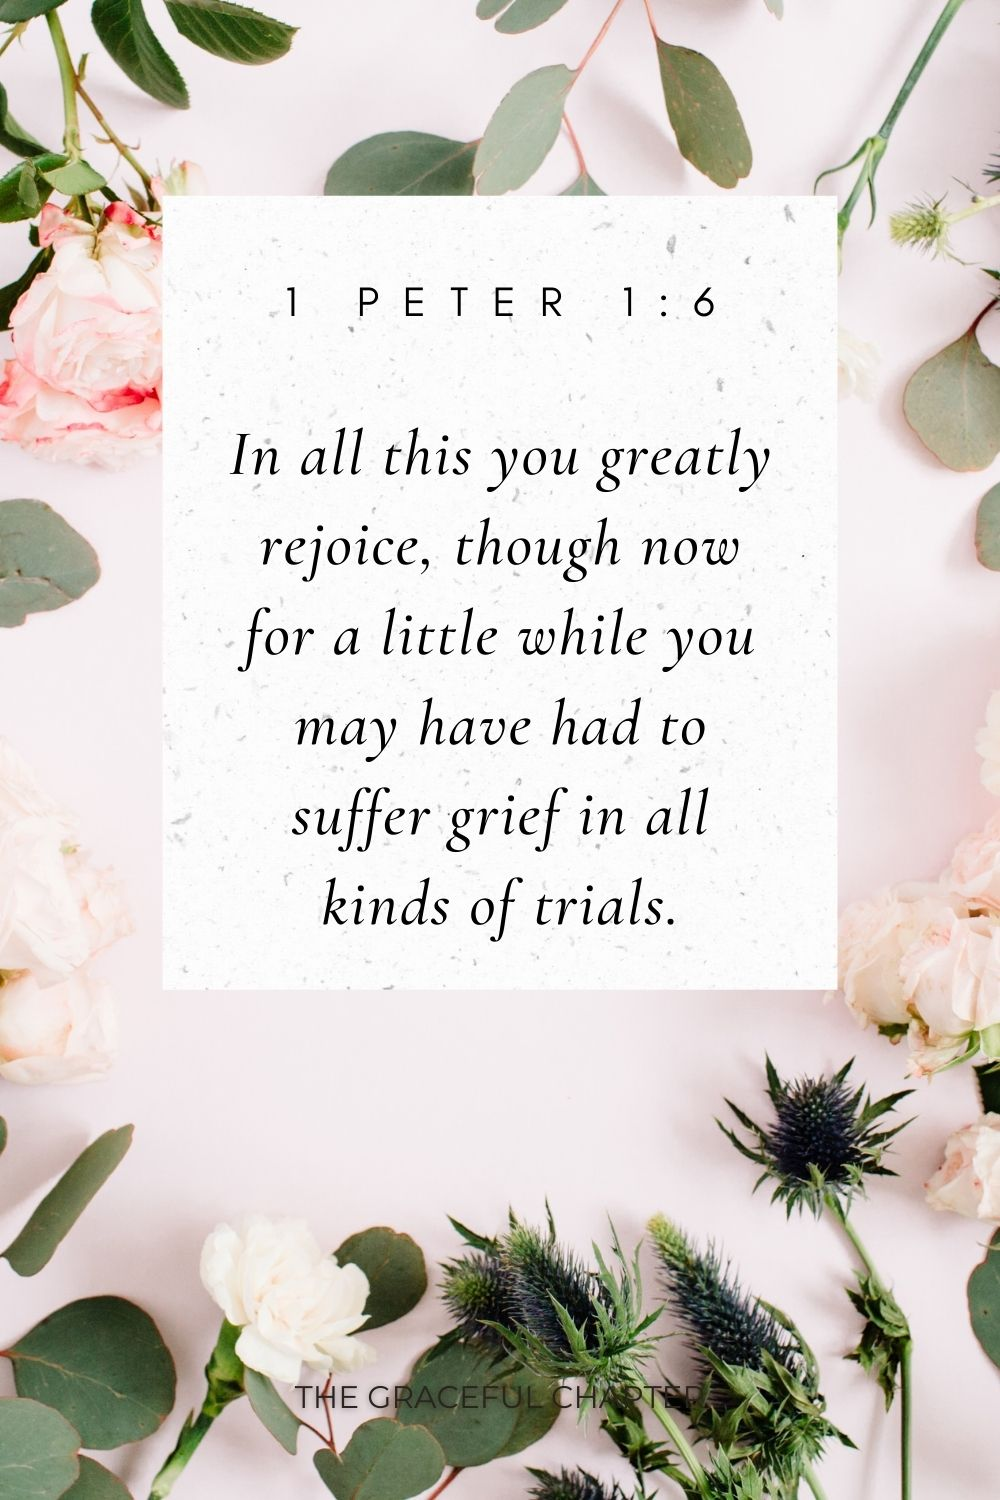 In all this you greatly rejoice, though now for a little while you may have had to suffer grief in all kinds of trials. 1 Peter 1:6